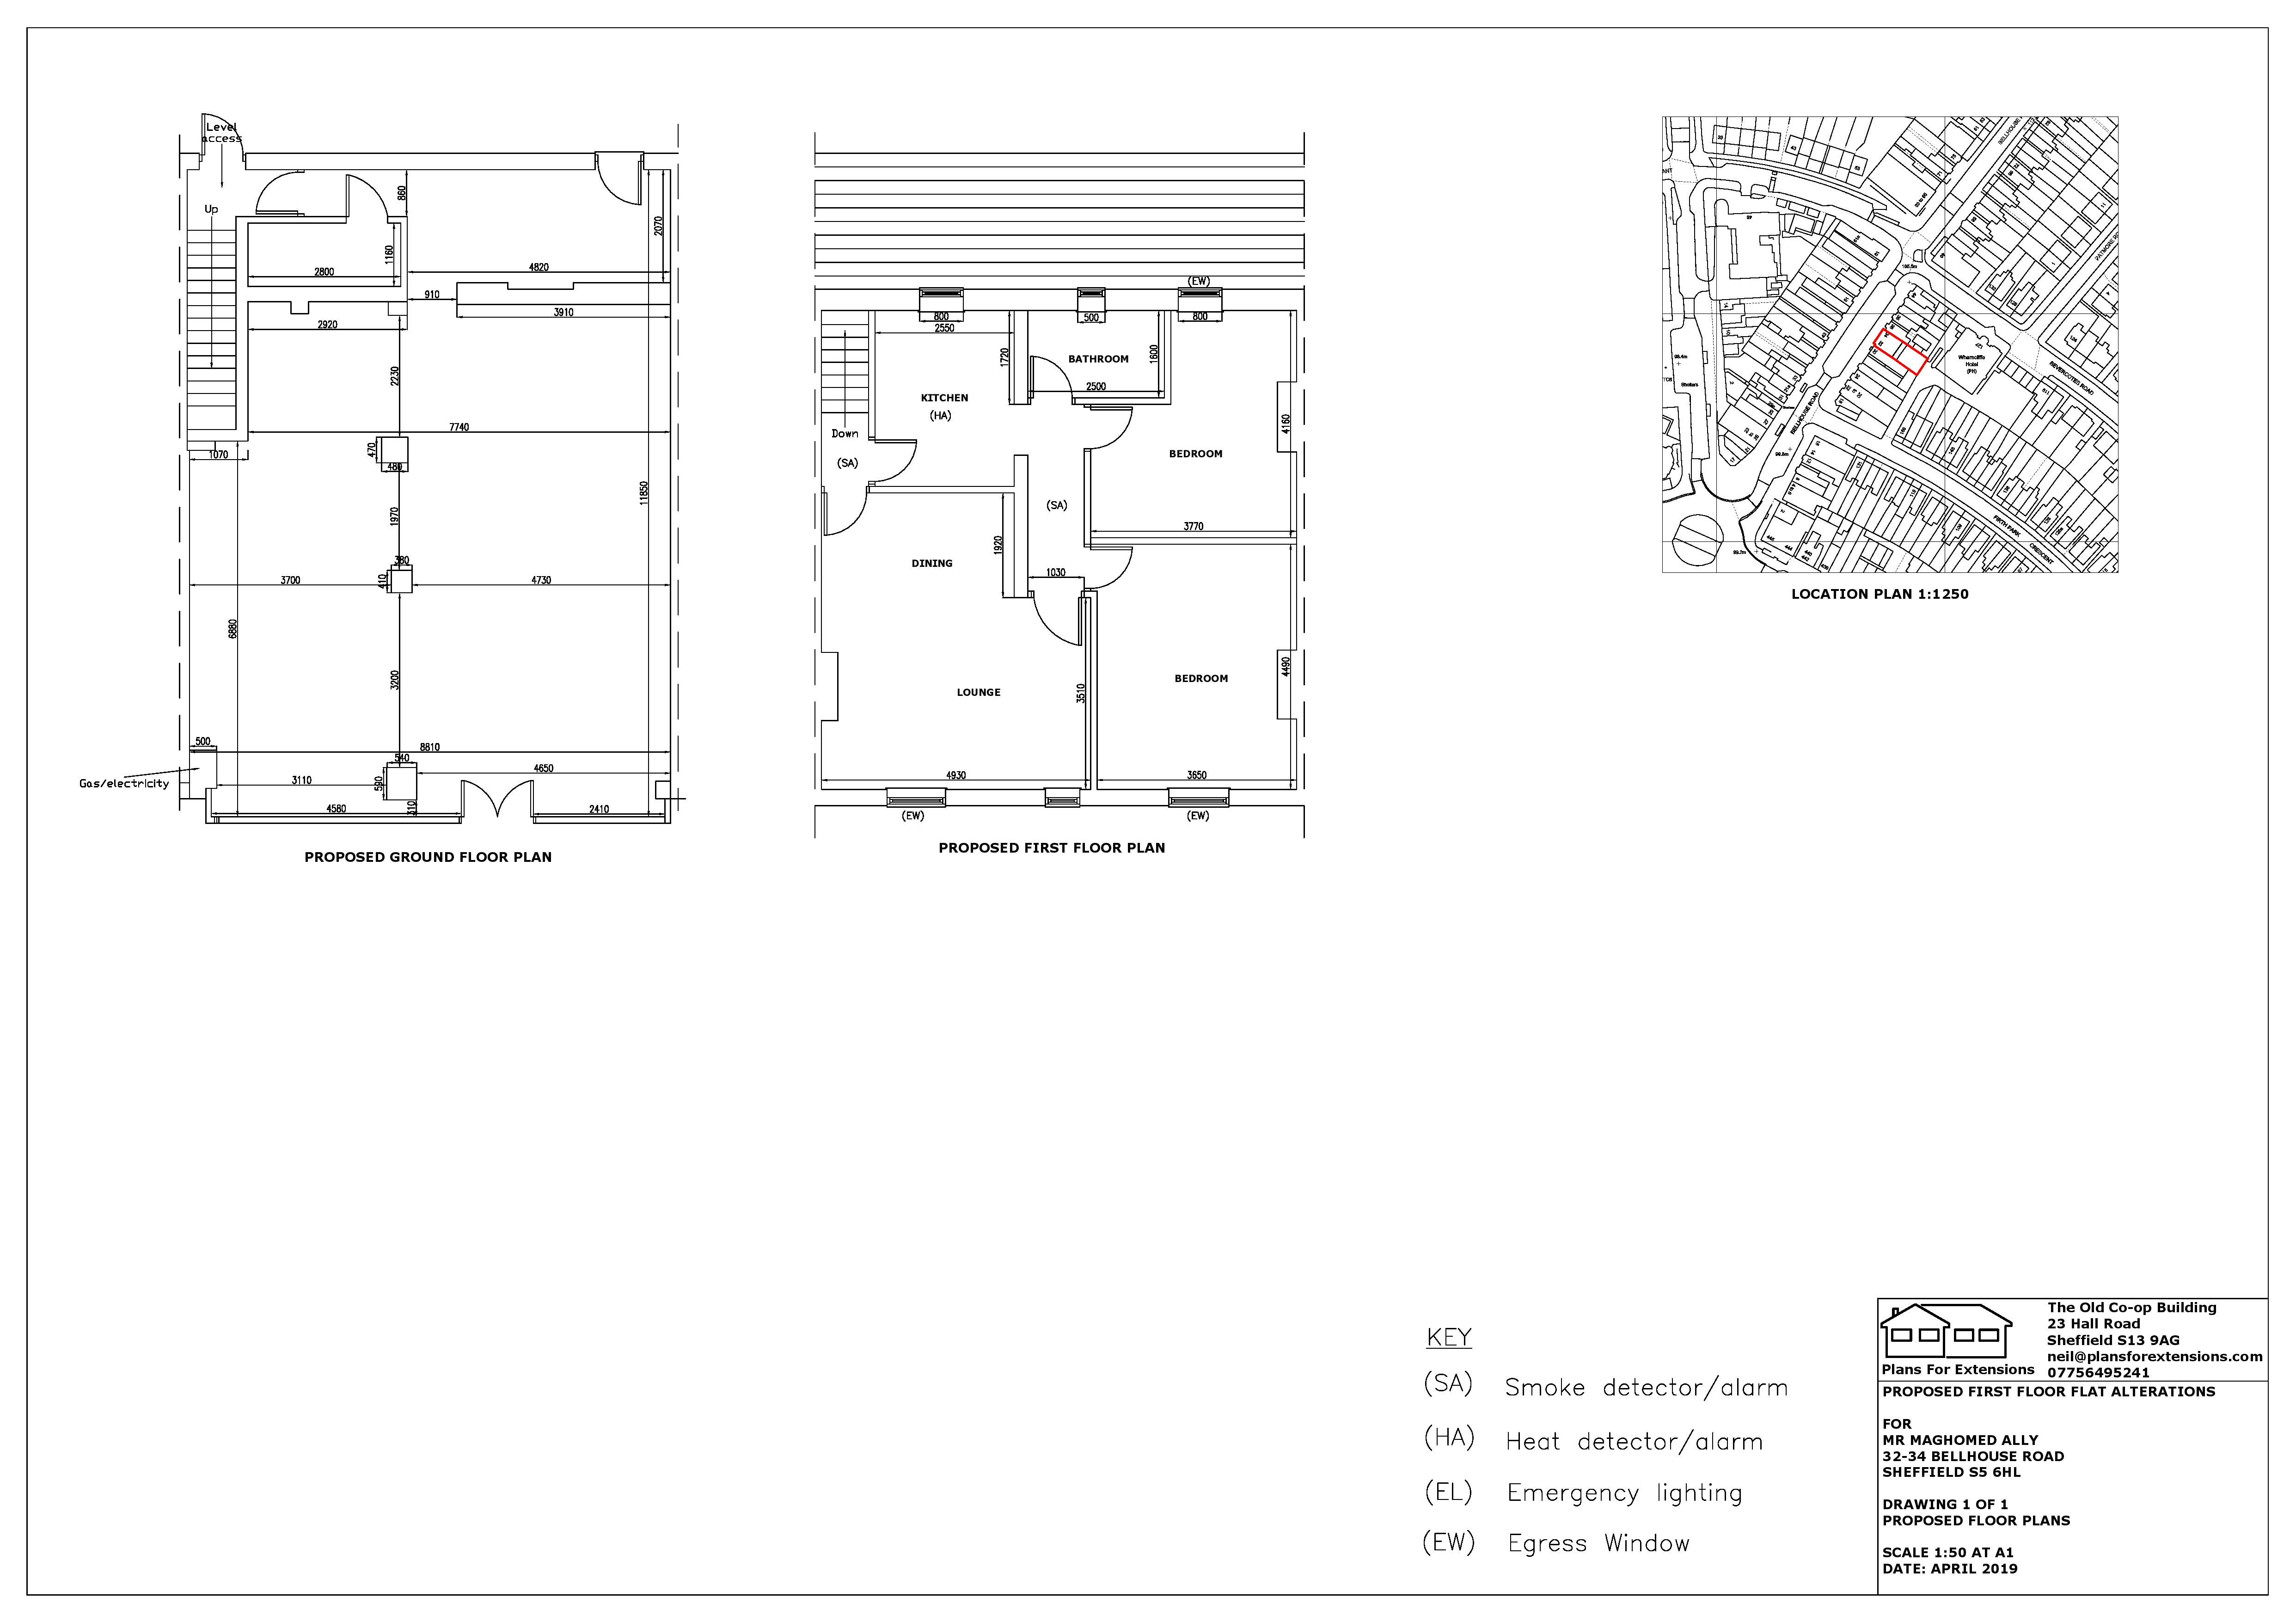 32-34 Bellhouse Road Proposed ground and